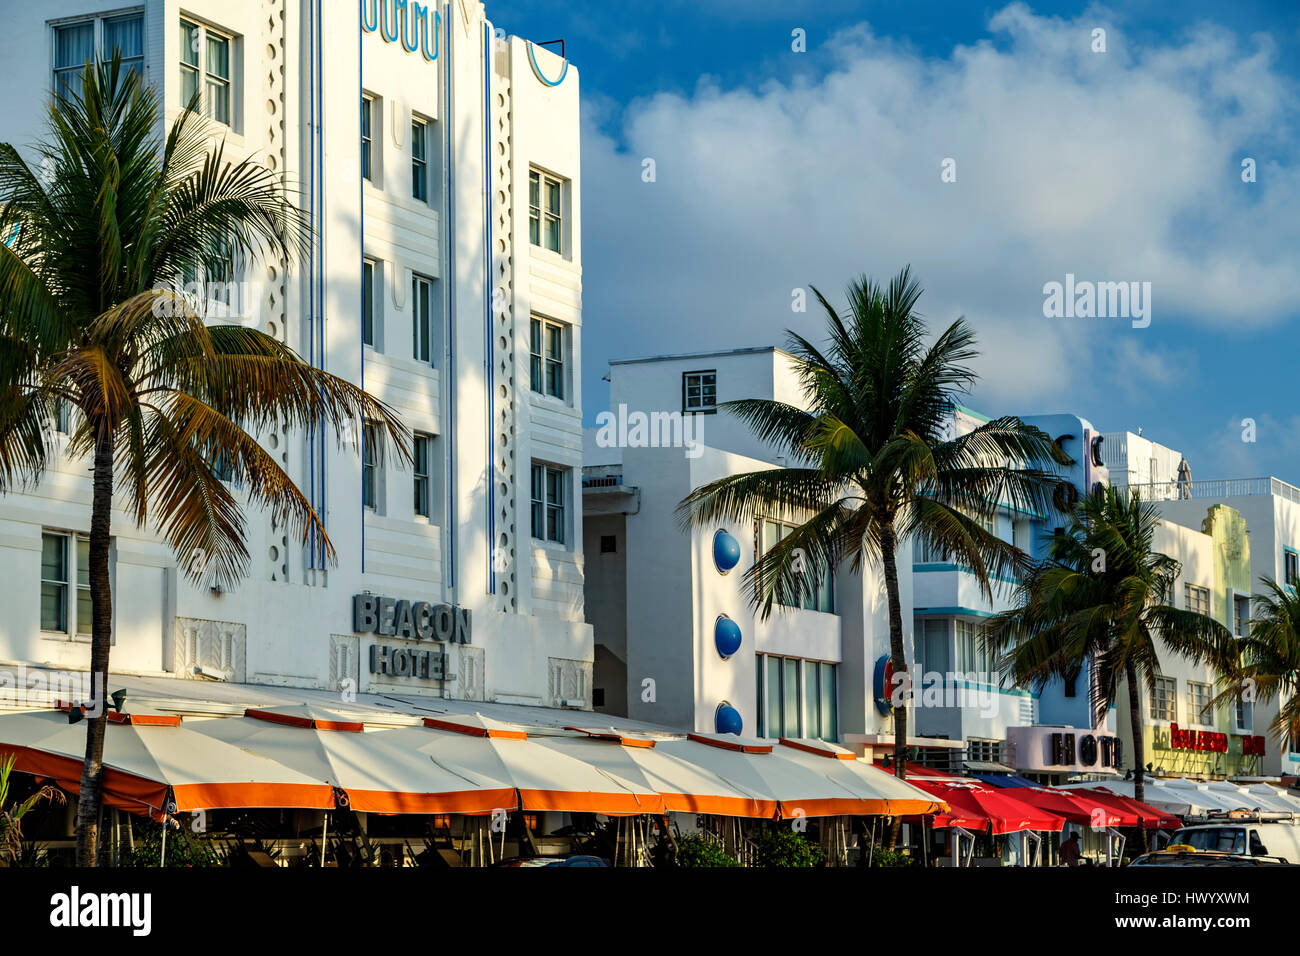 Row of hotels, South Beach, Miami Beach, Florida USA - Stock Image